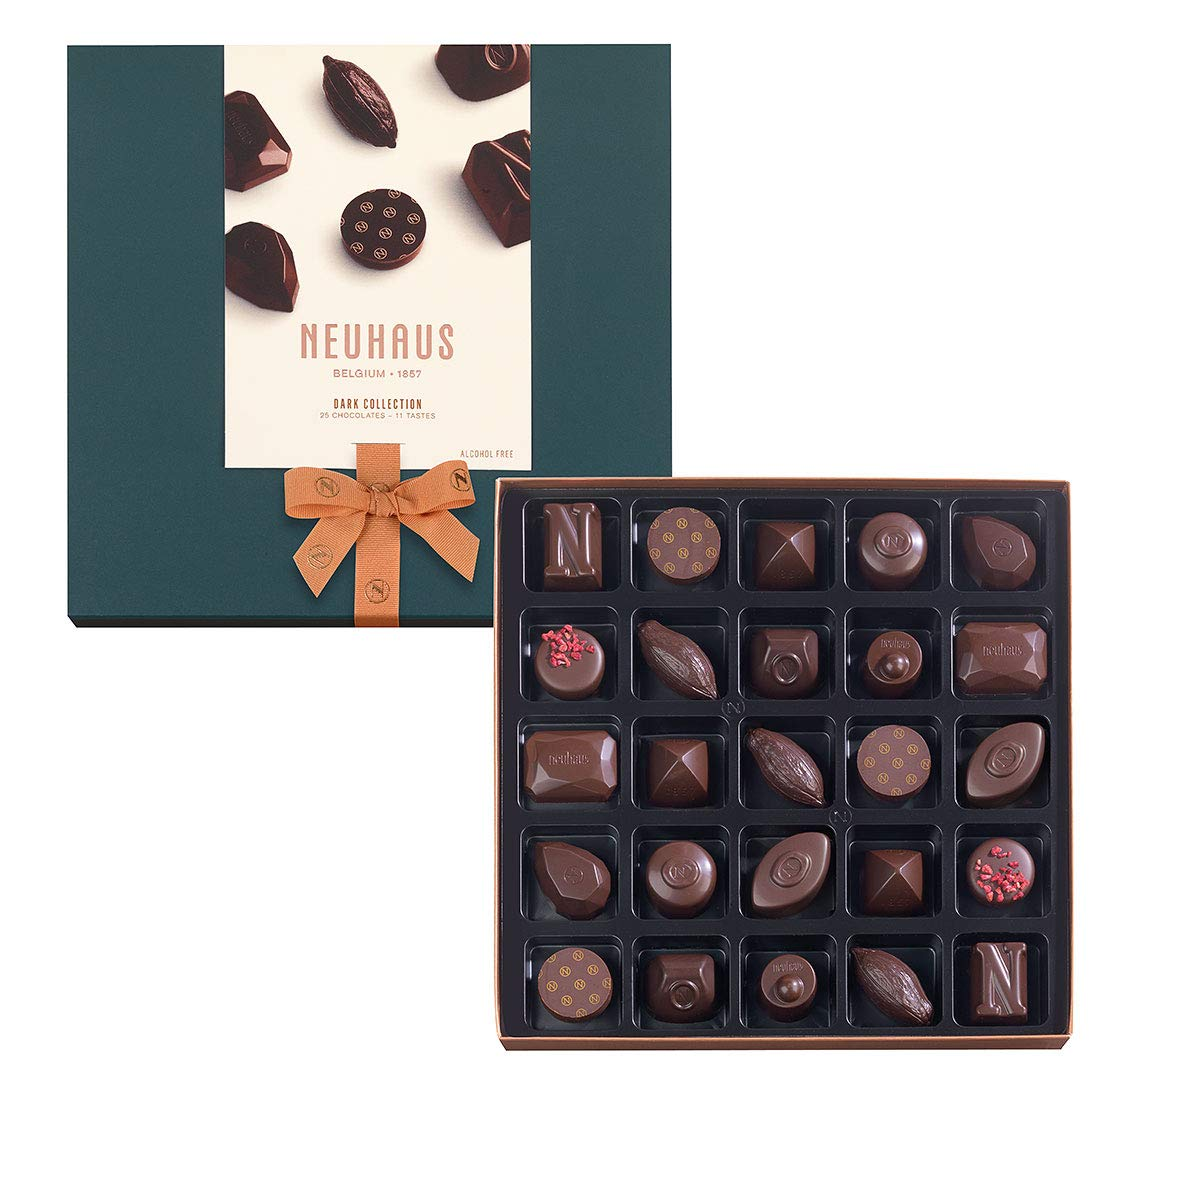 Neuhaus Chocolate Dark Collection, 25 Assortment Pieces, 9.28 oz by Neuhaus